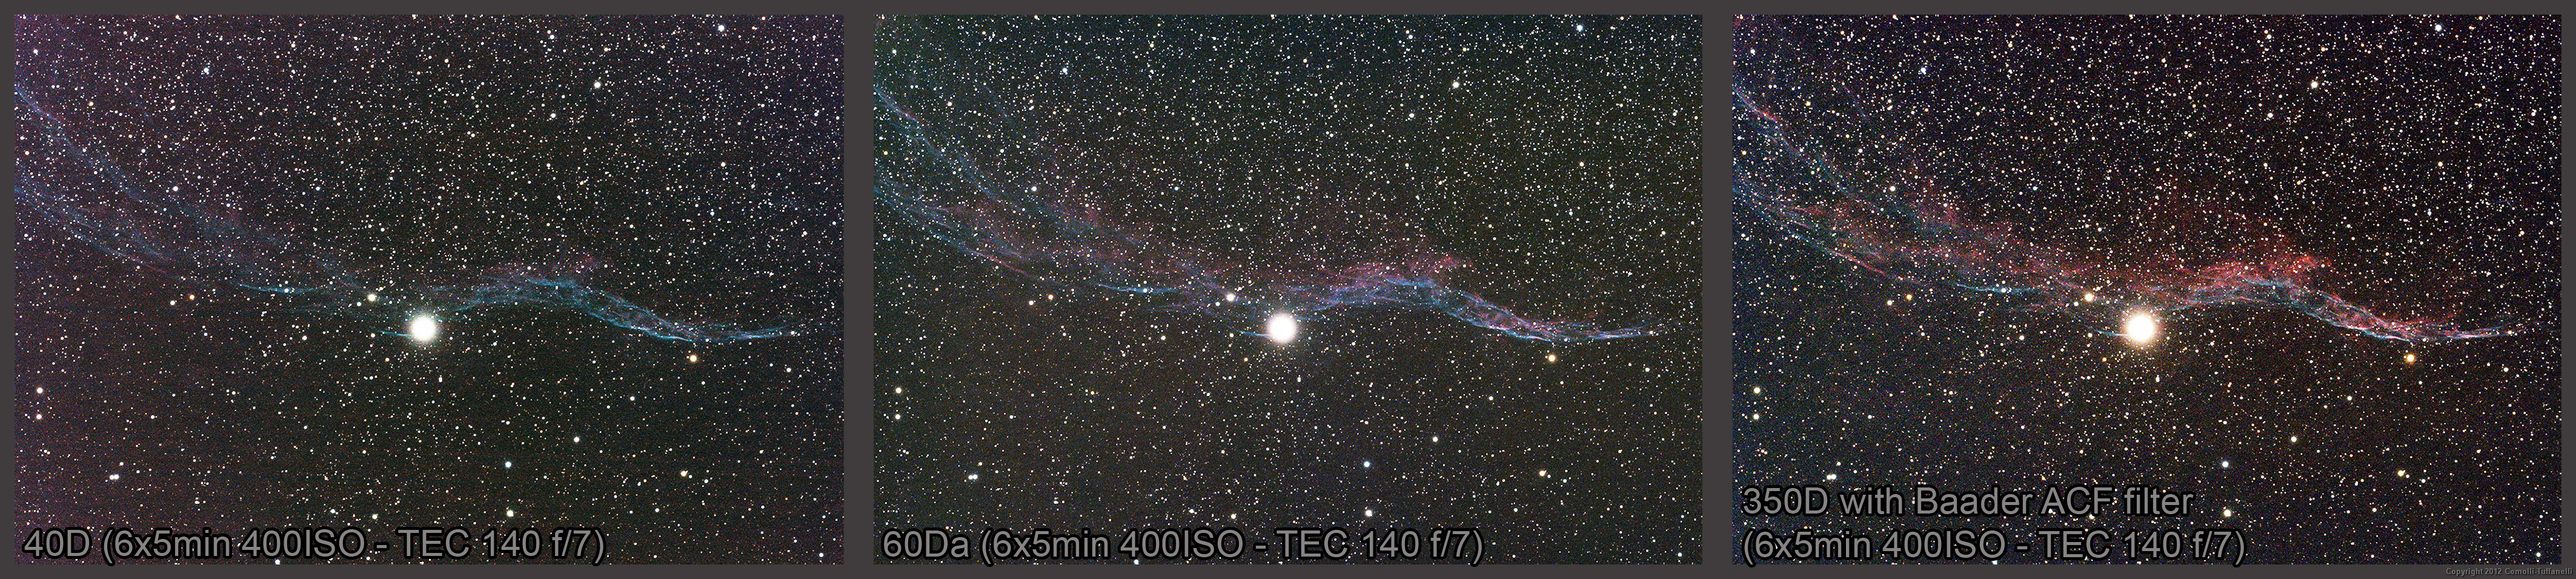 Camera Canon 20da Dslr Camera canon eos 60da the return to astrophotography user reviews fig 4 veil nebula ngc6960 obtained from tradate va italy a heavily light polluted city tec 140 apo refractor with field f